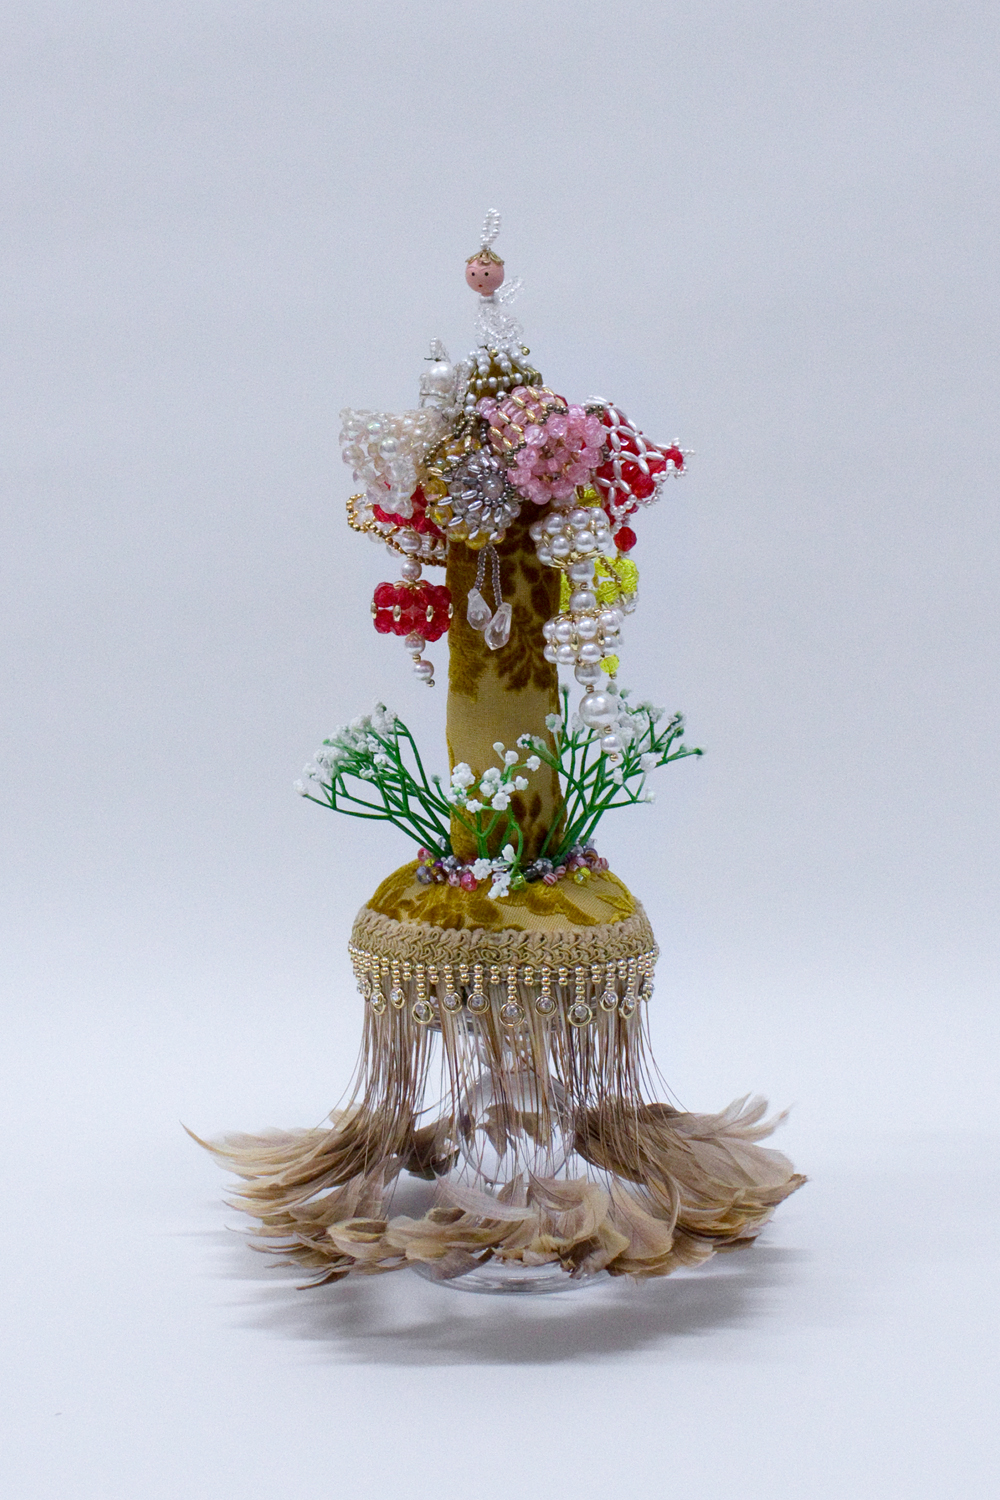 """Flight,  Crystal and plastic beads, found fabric, trim, ornaments, plastic flowers, polyester batting, thread, glass stand, 8 x 8 x 14"""", 2019"""